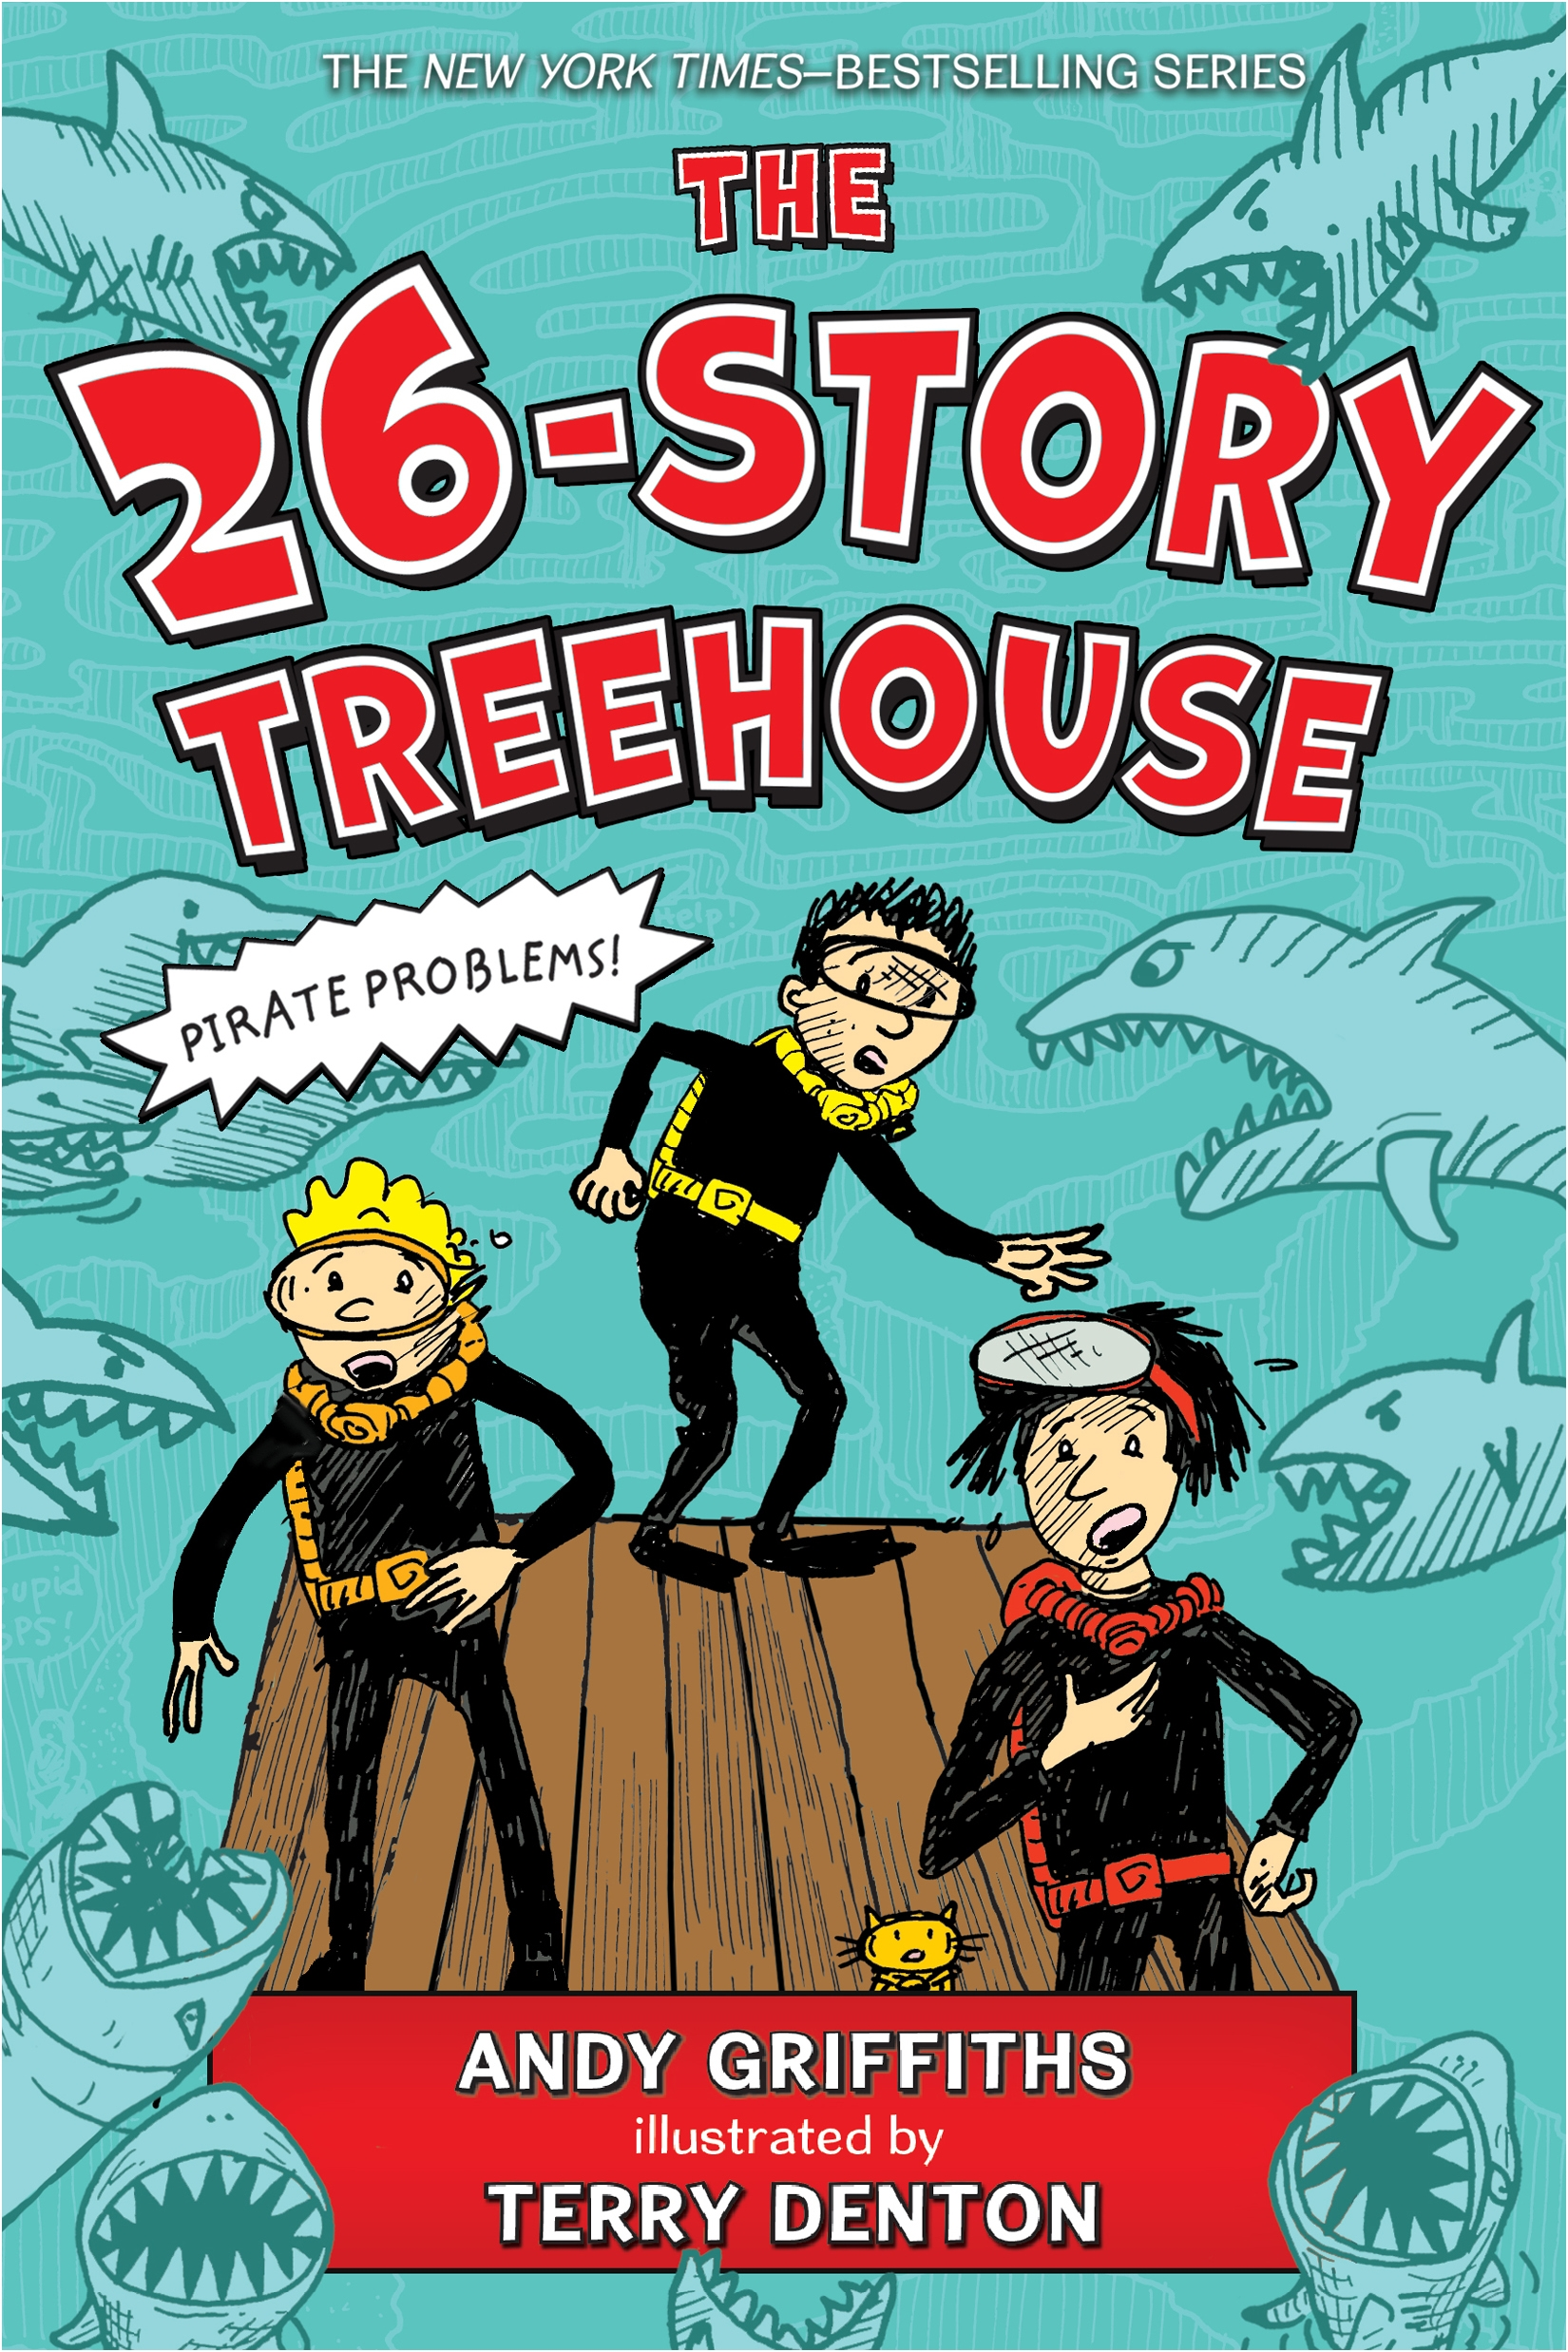 The 26-Story Treehouse Pirate Problems!